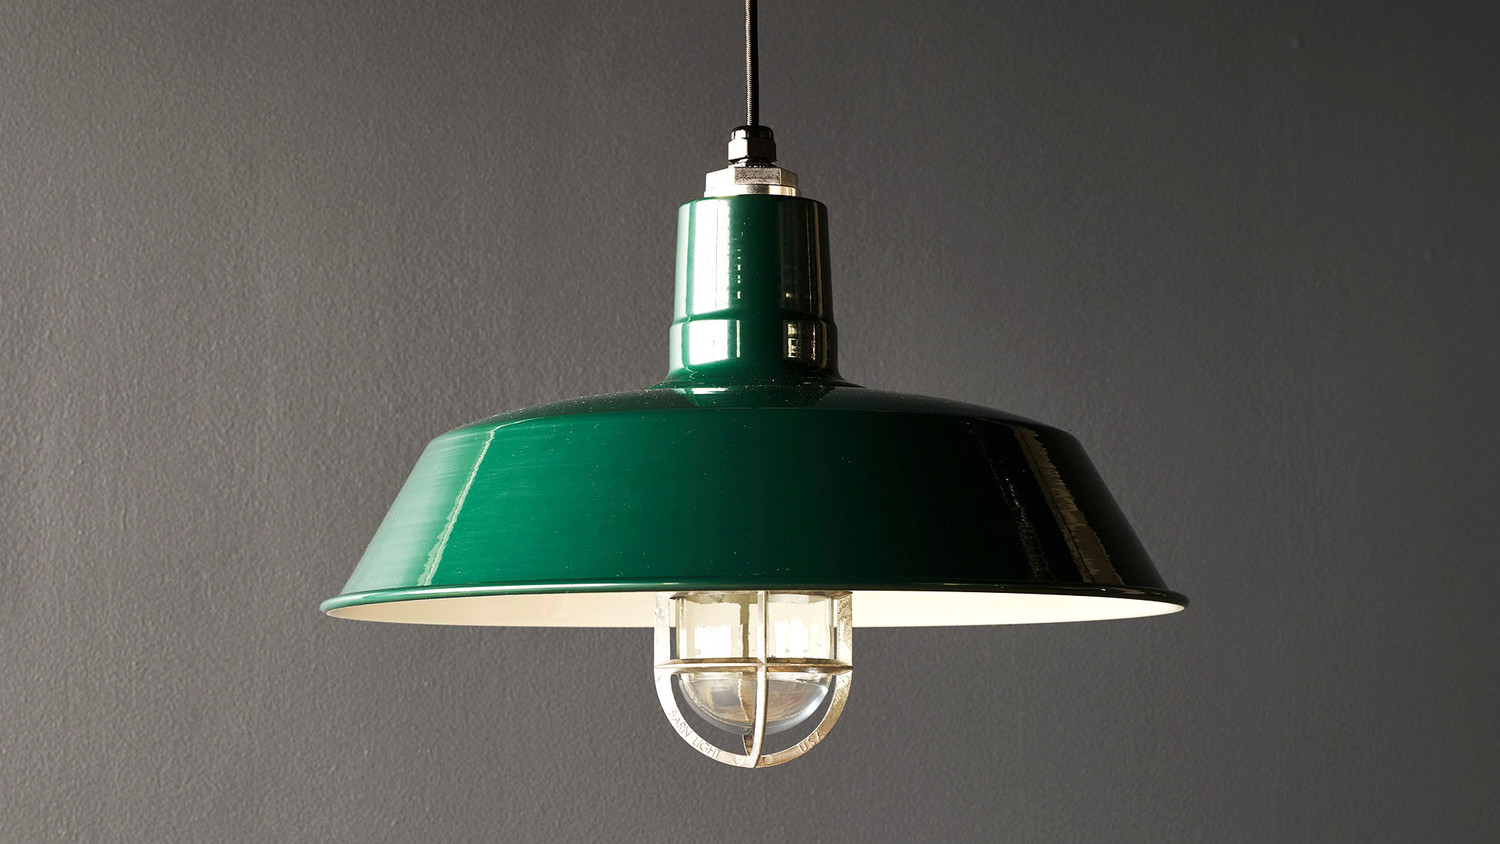 Can't Miss Bargains On Ariah 1-Light Single Geometric with regard to Melora 1-Light Single Geometric Pendants (Image 7 of 30)